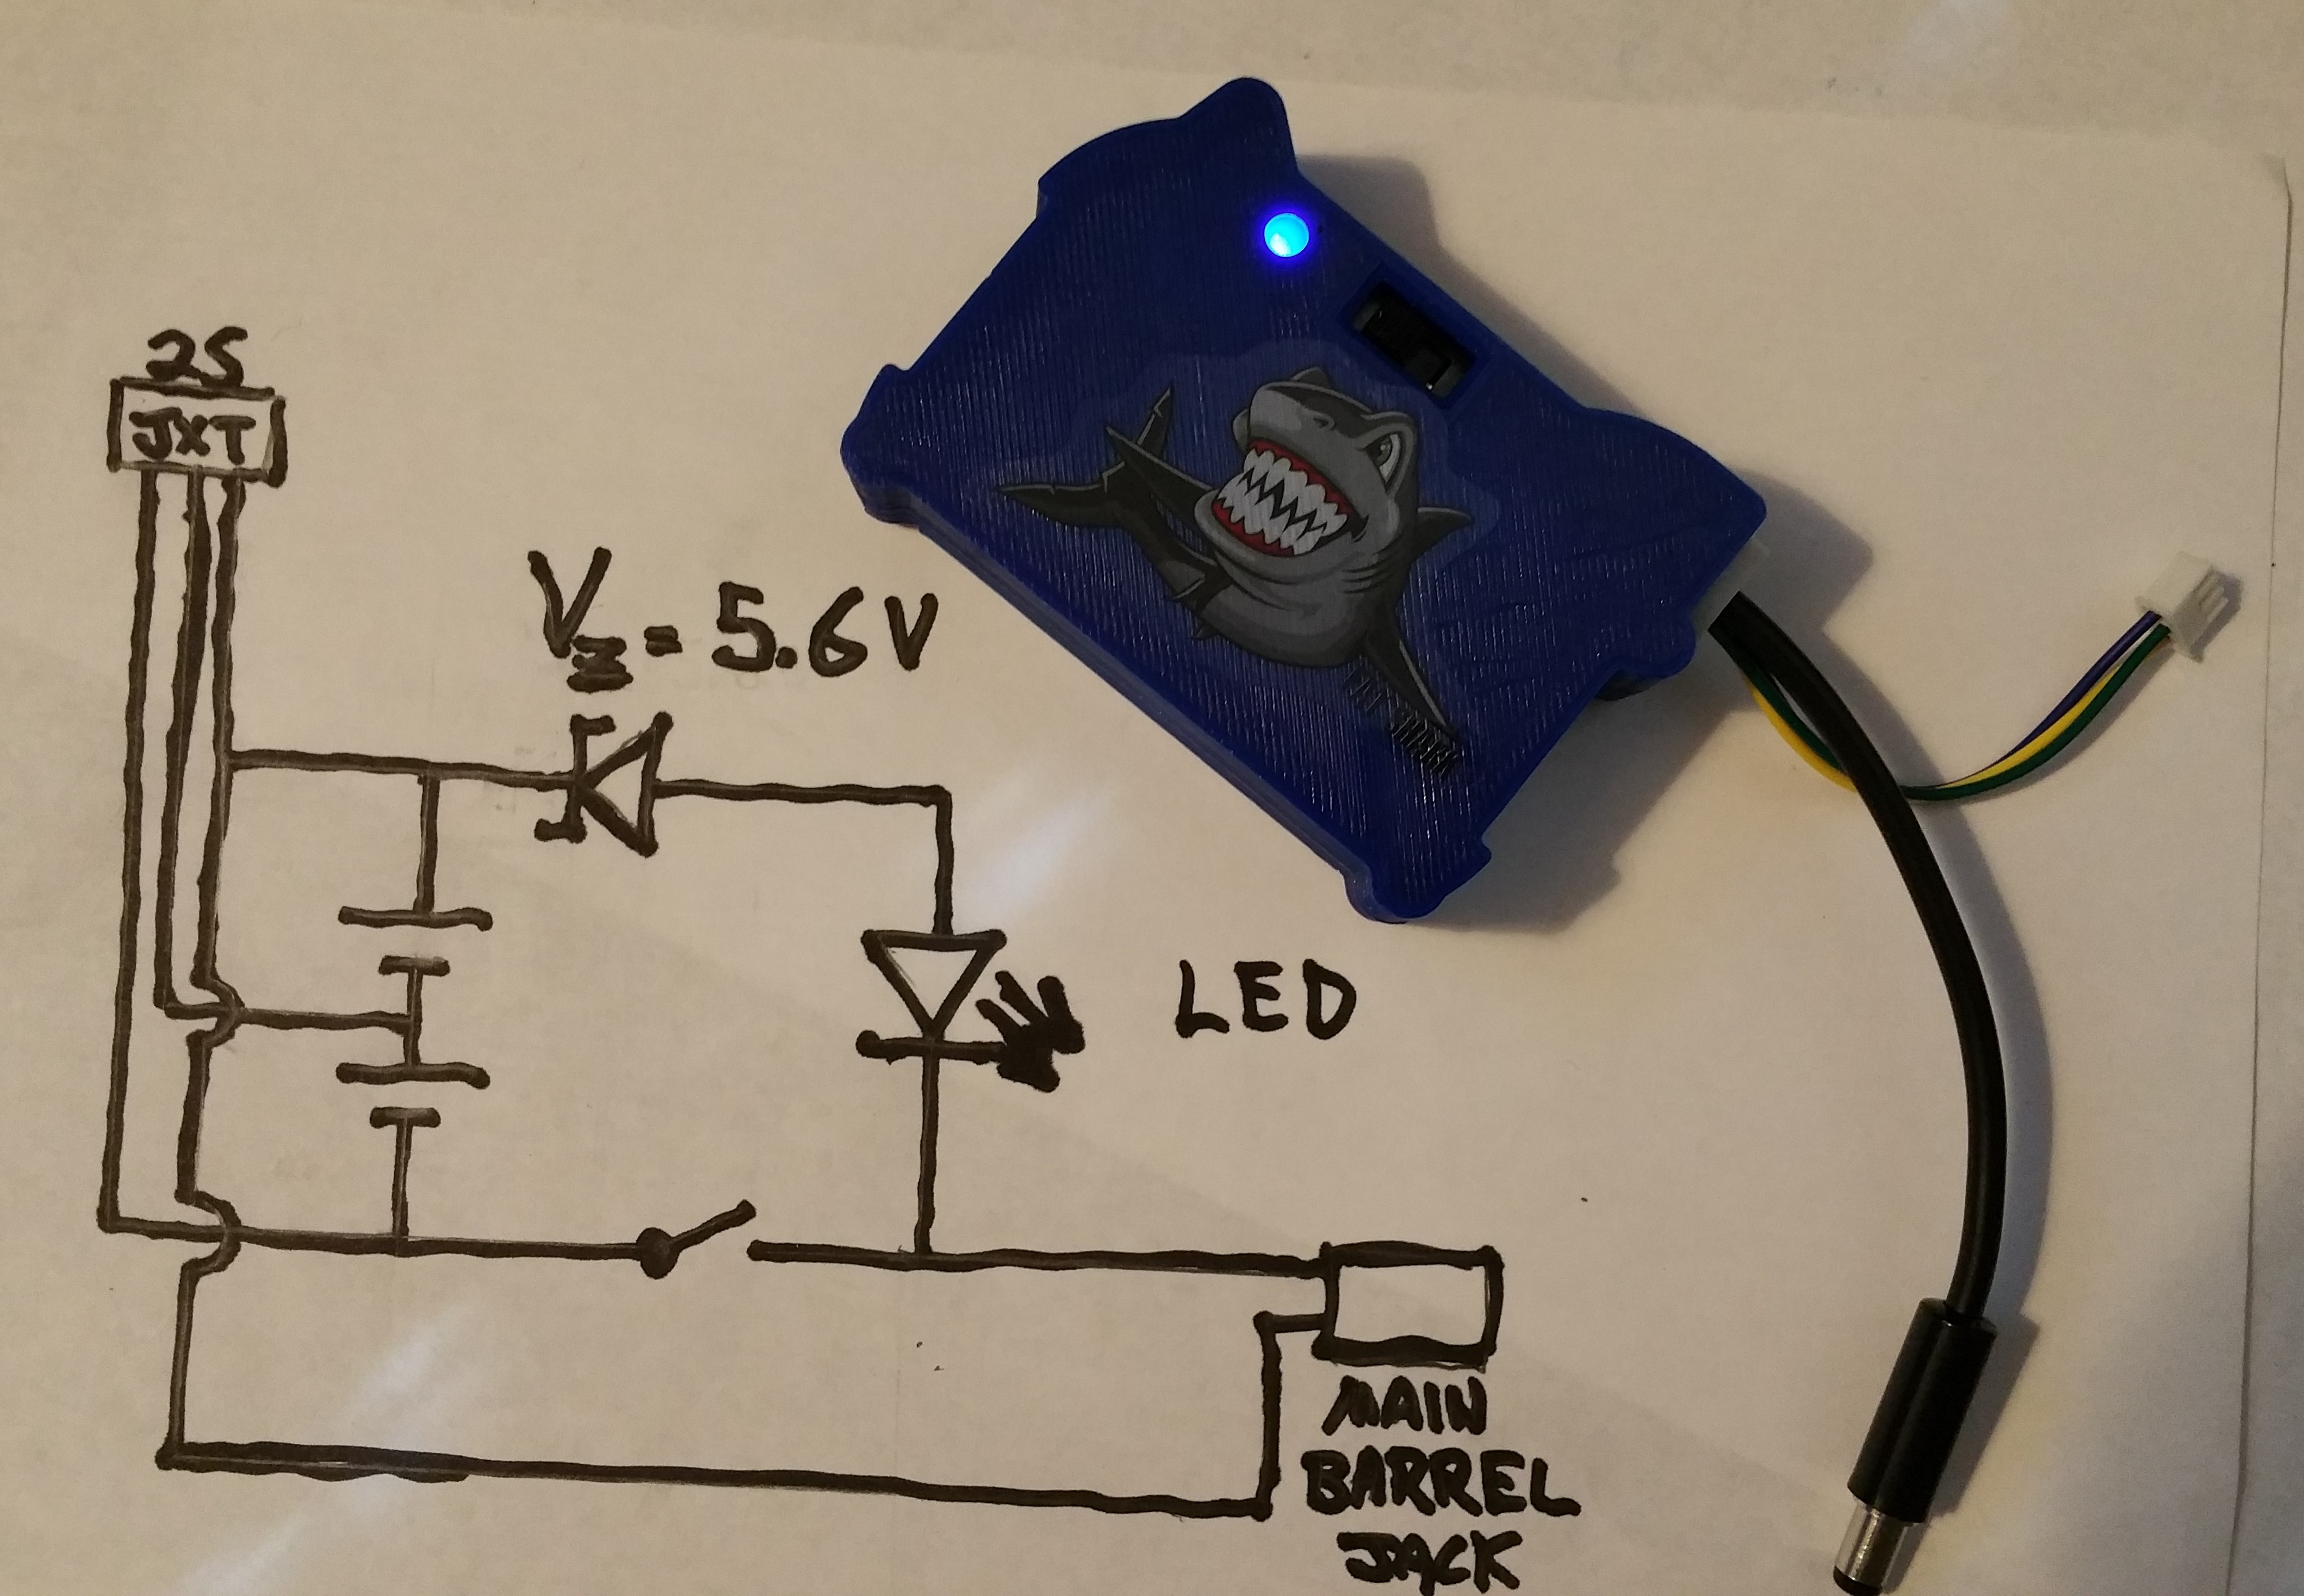 Fat Shark Fpv Goggle Battery With On Off Switch And Power Indicator Diagram Wiring Basic Lithium Ion Charger Circuit By Jellofrog Feb 25 2017 View Original